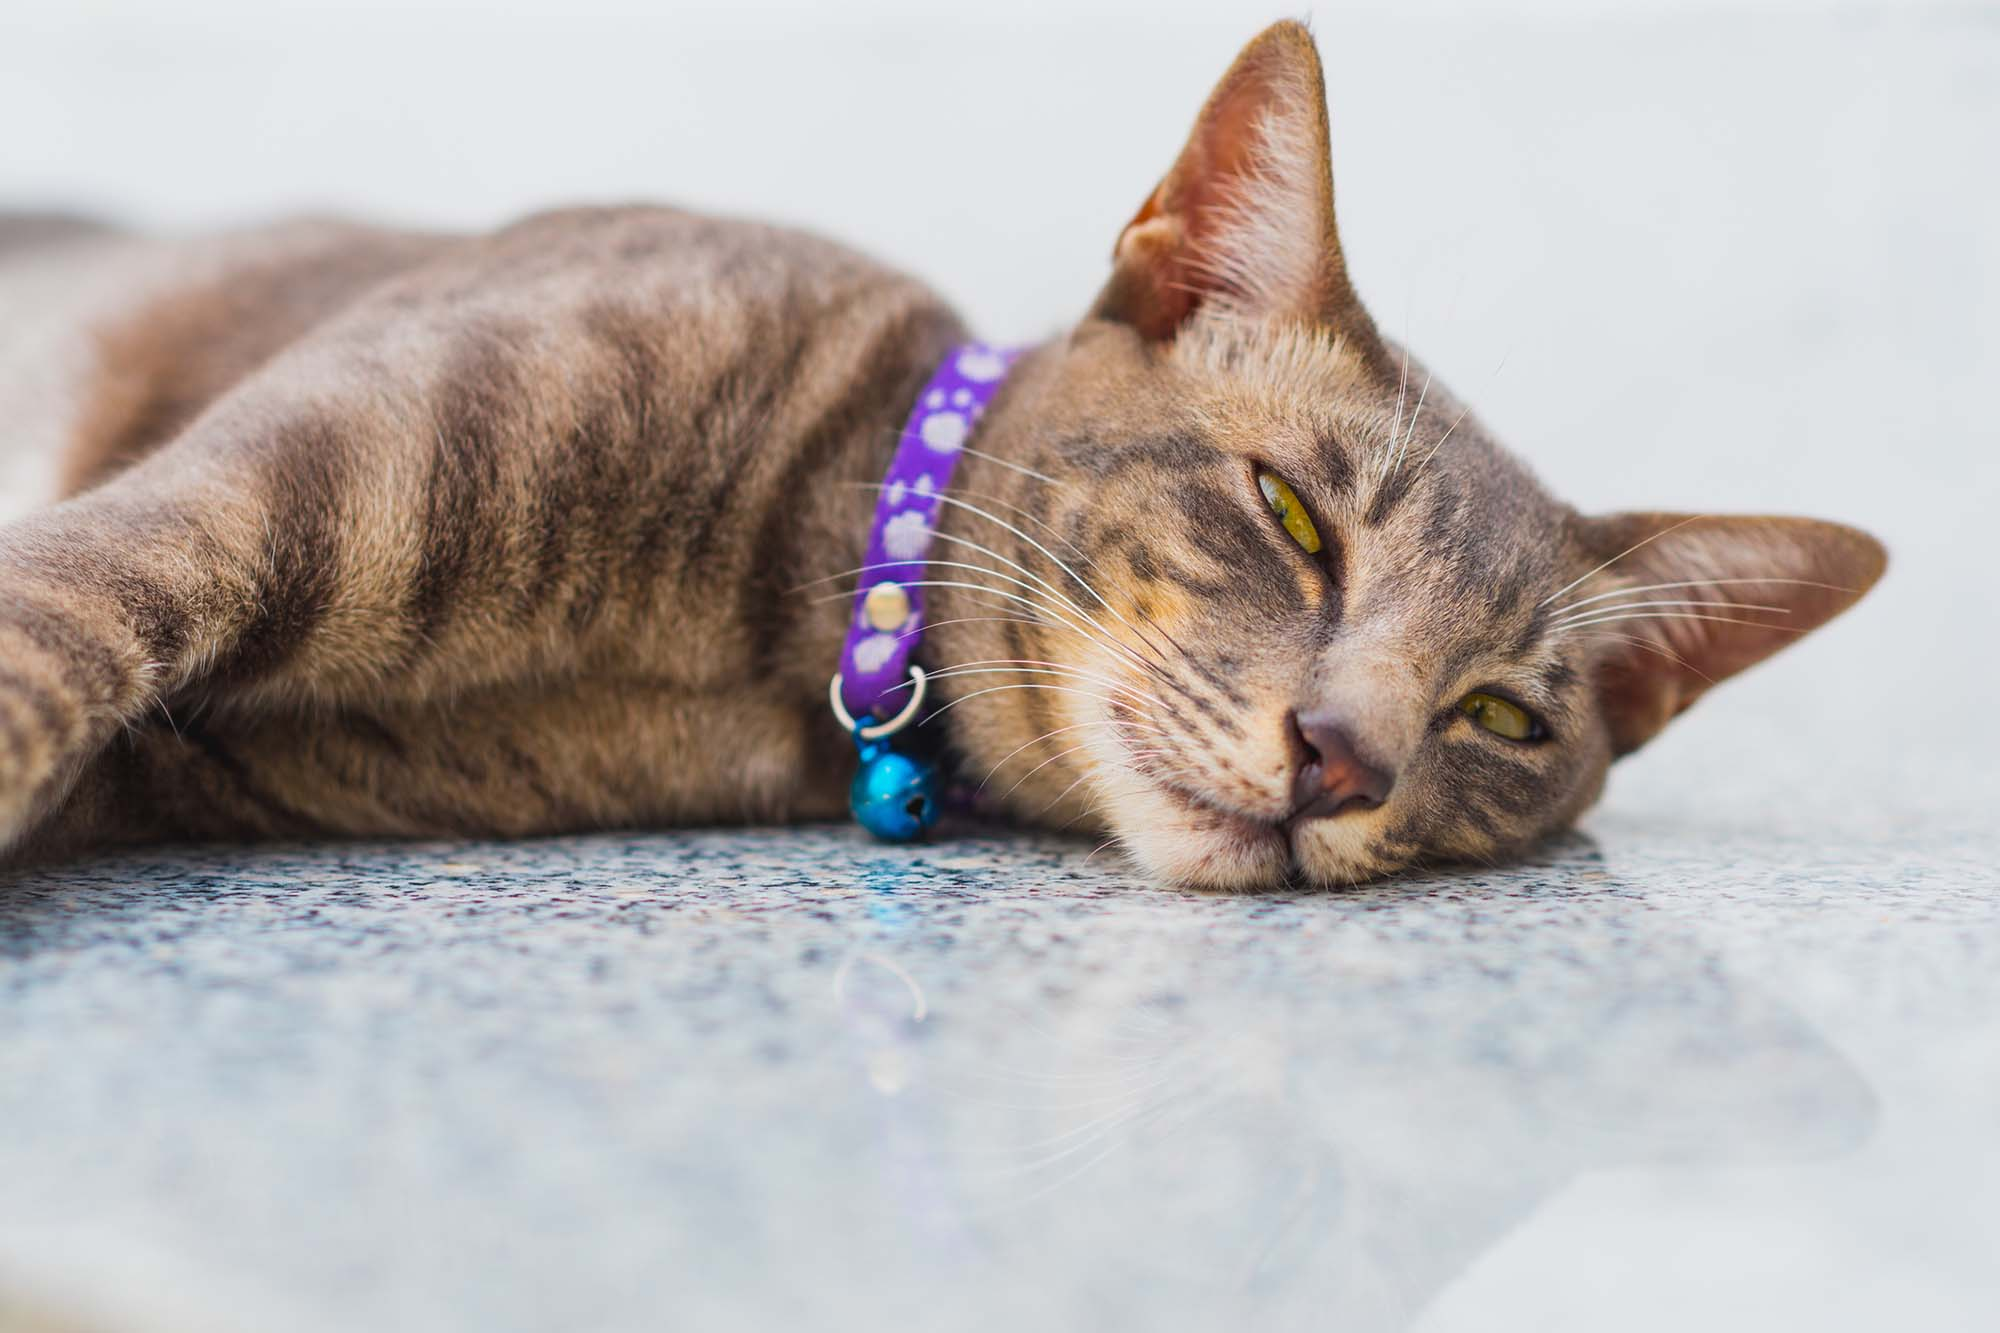 Tired cat with purple collar